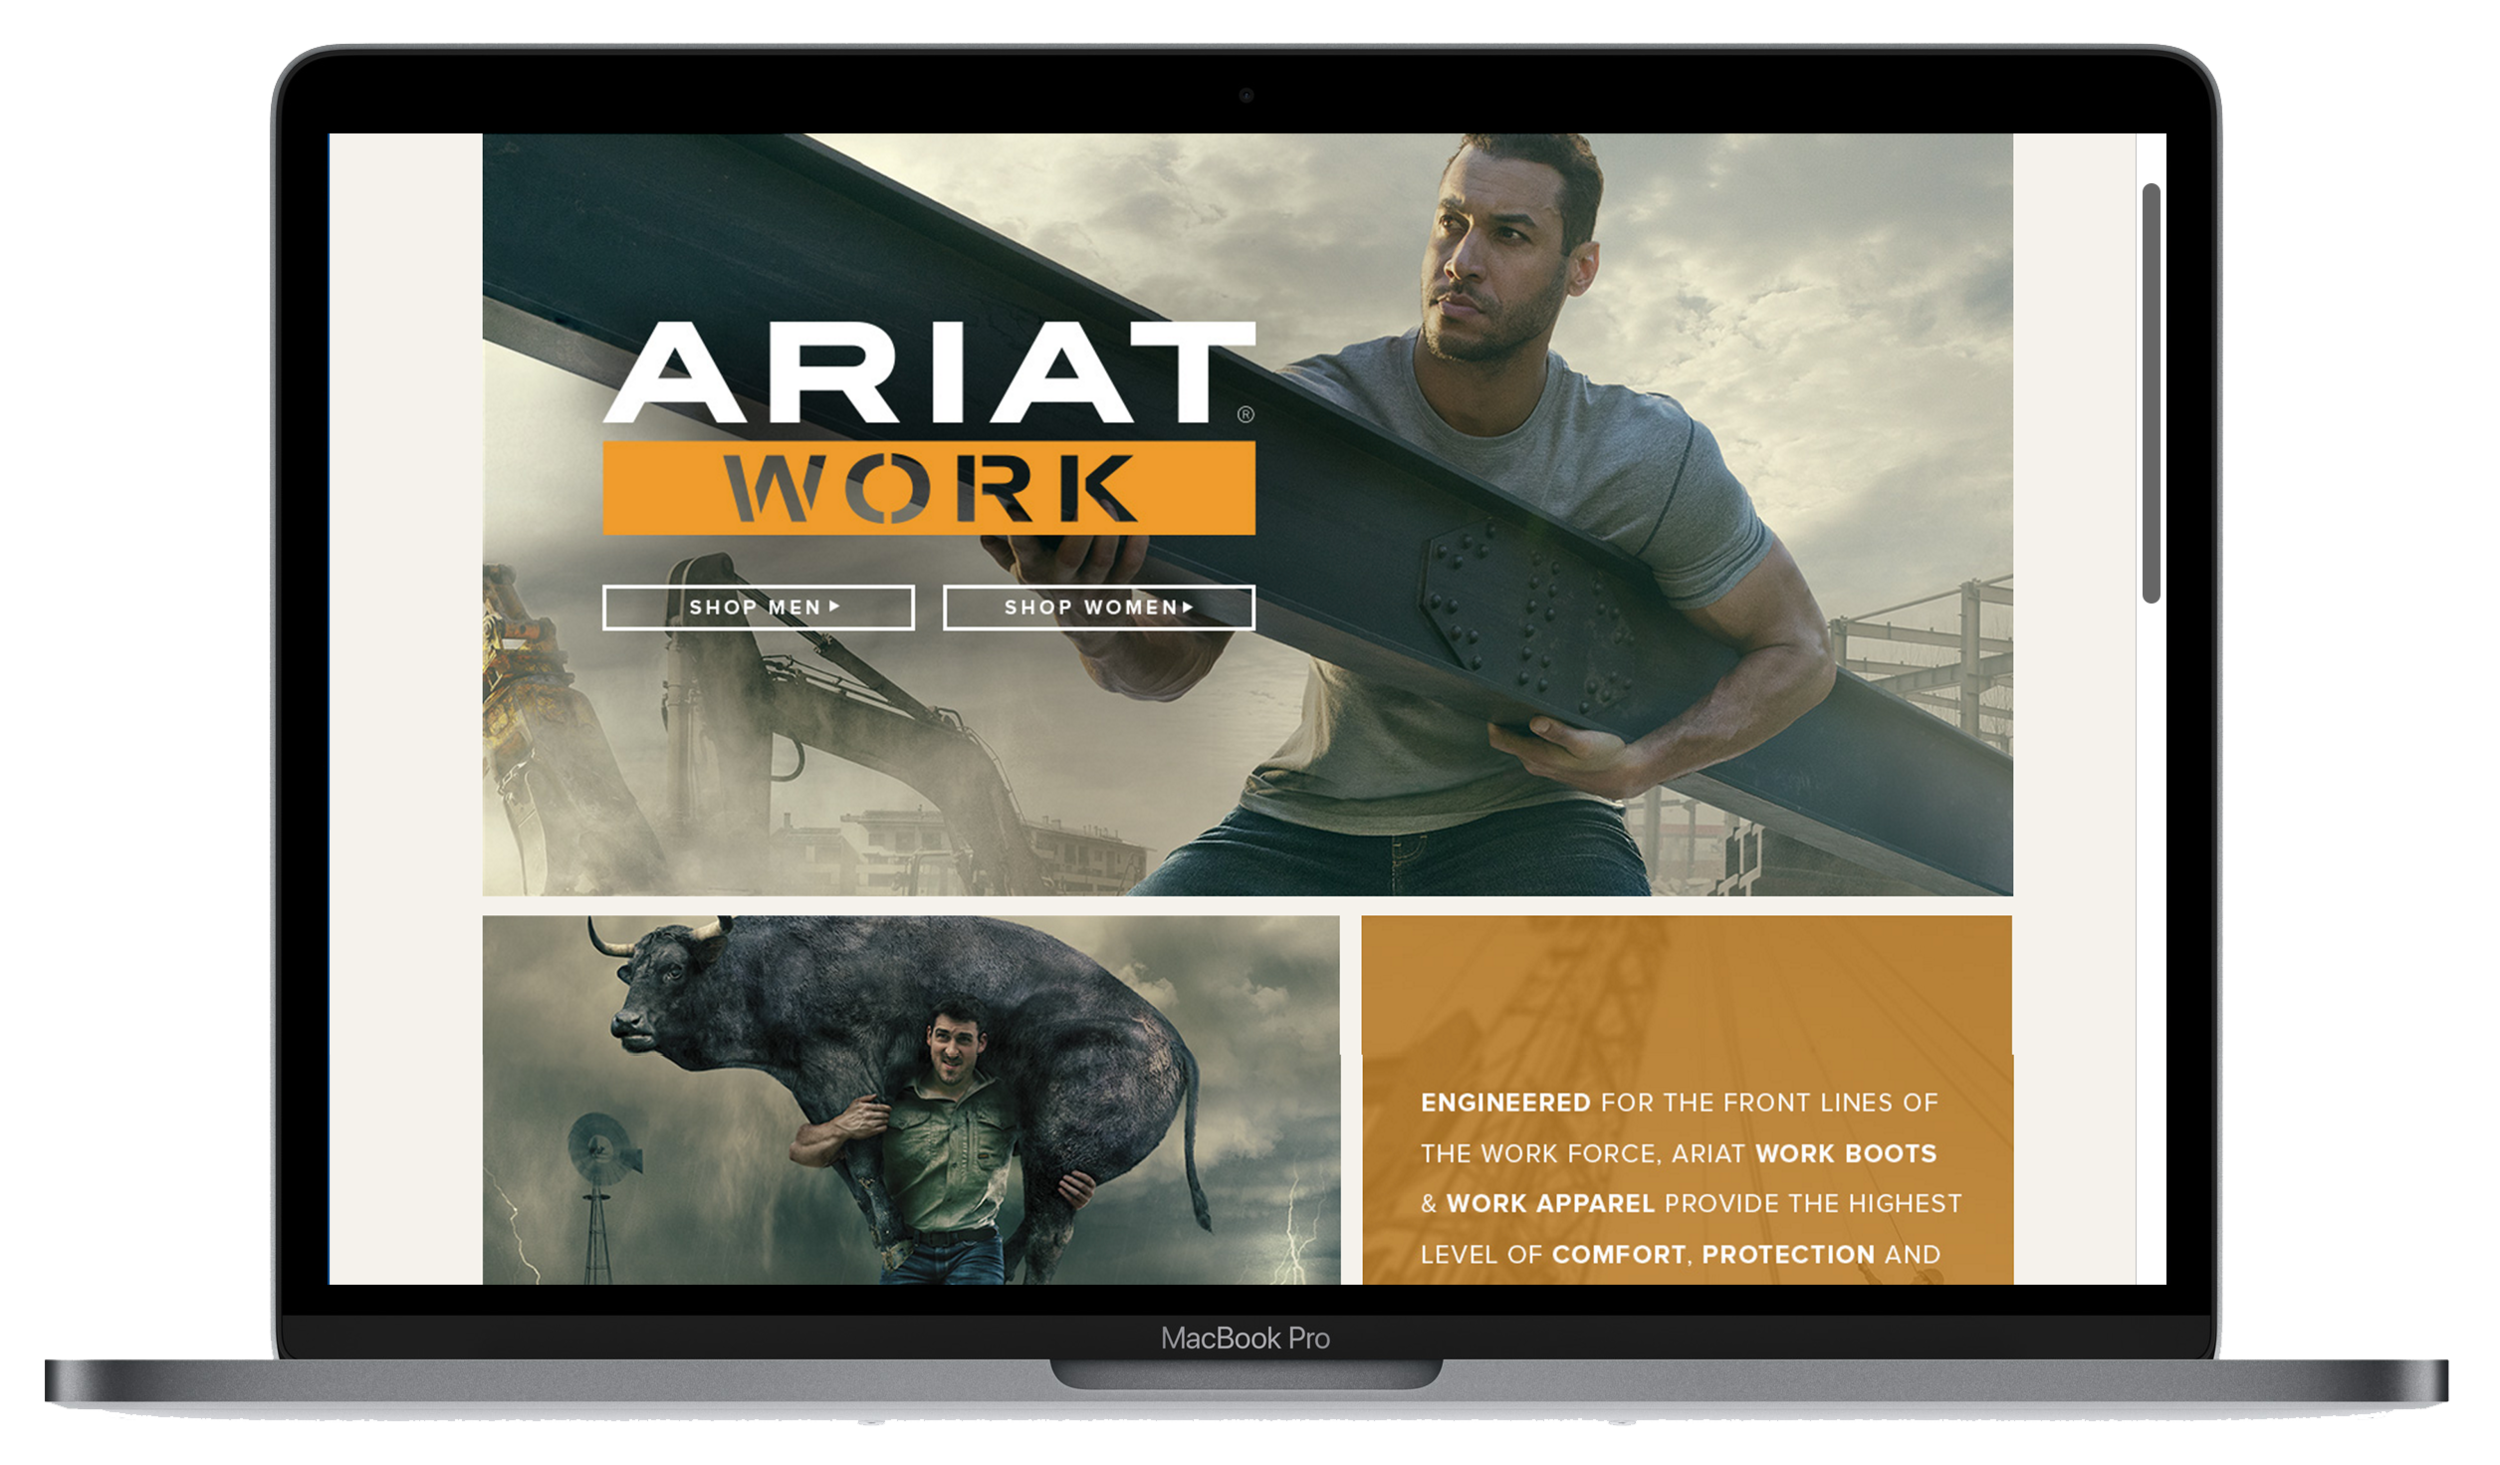 ariat_work_homepage_0000_Layer-Comp-1.png